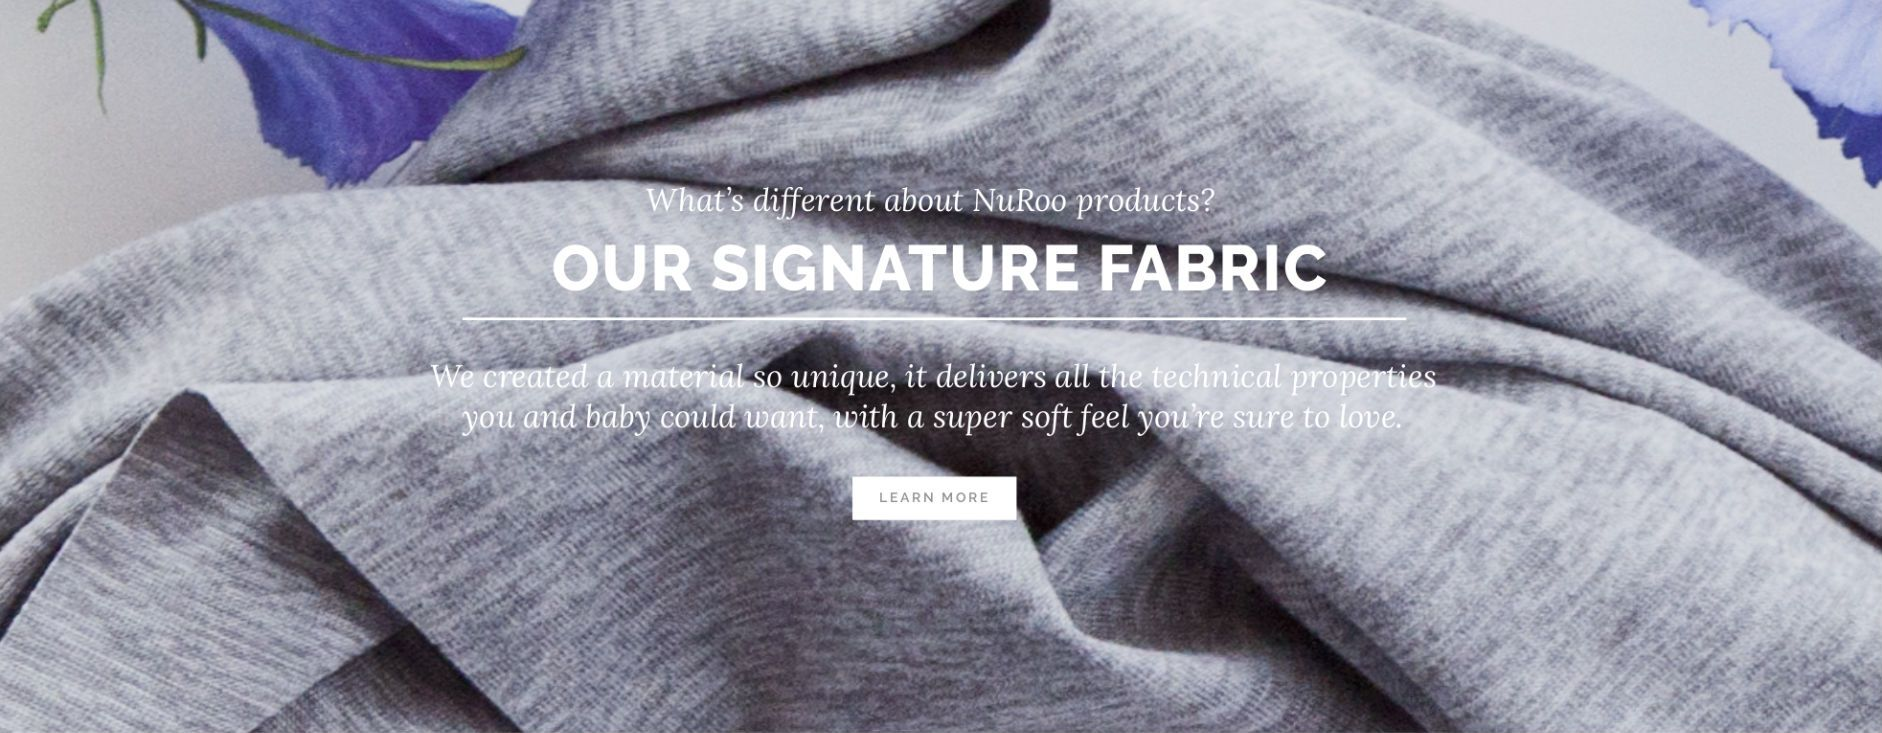 scarf-signature-fabric